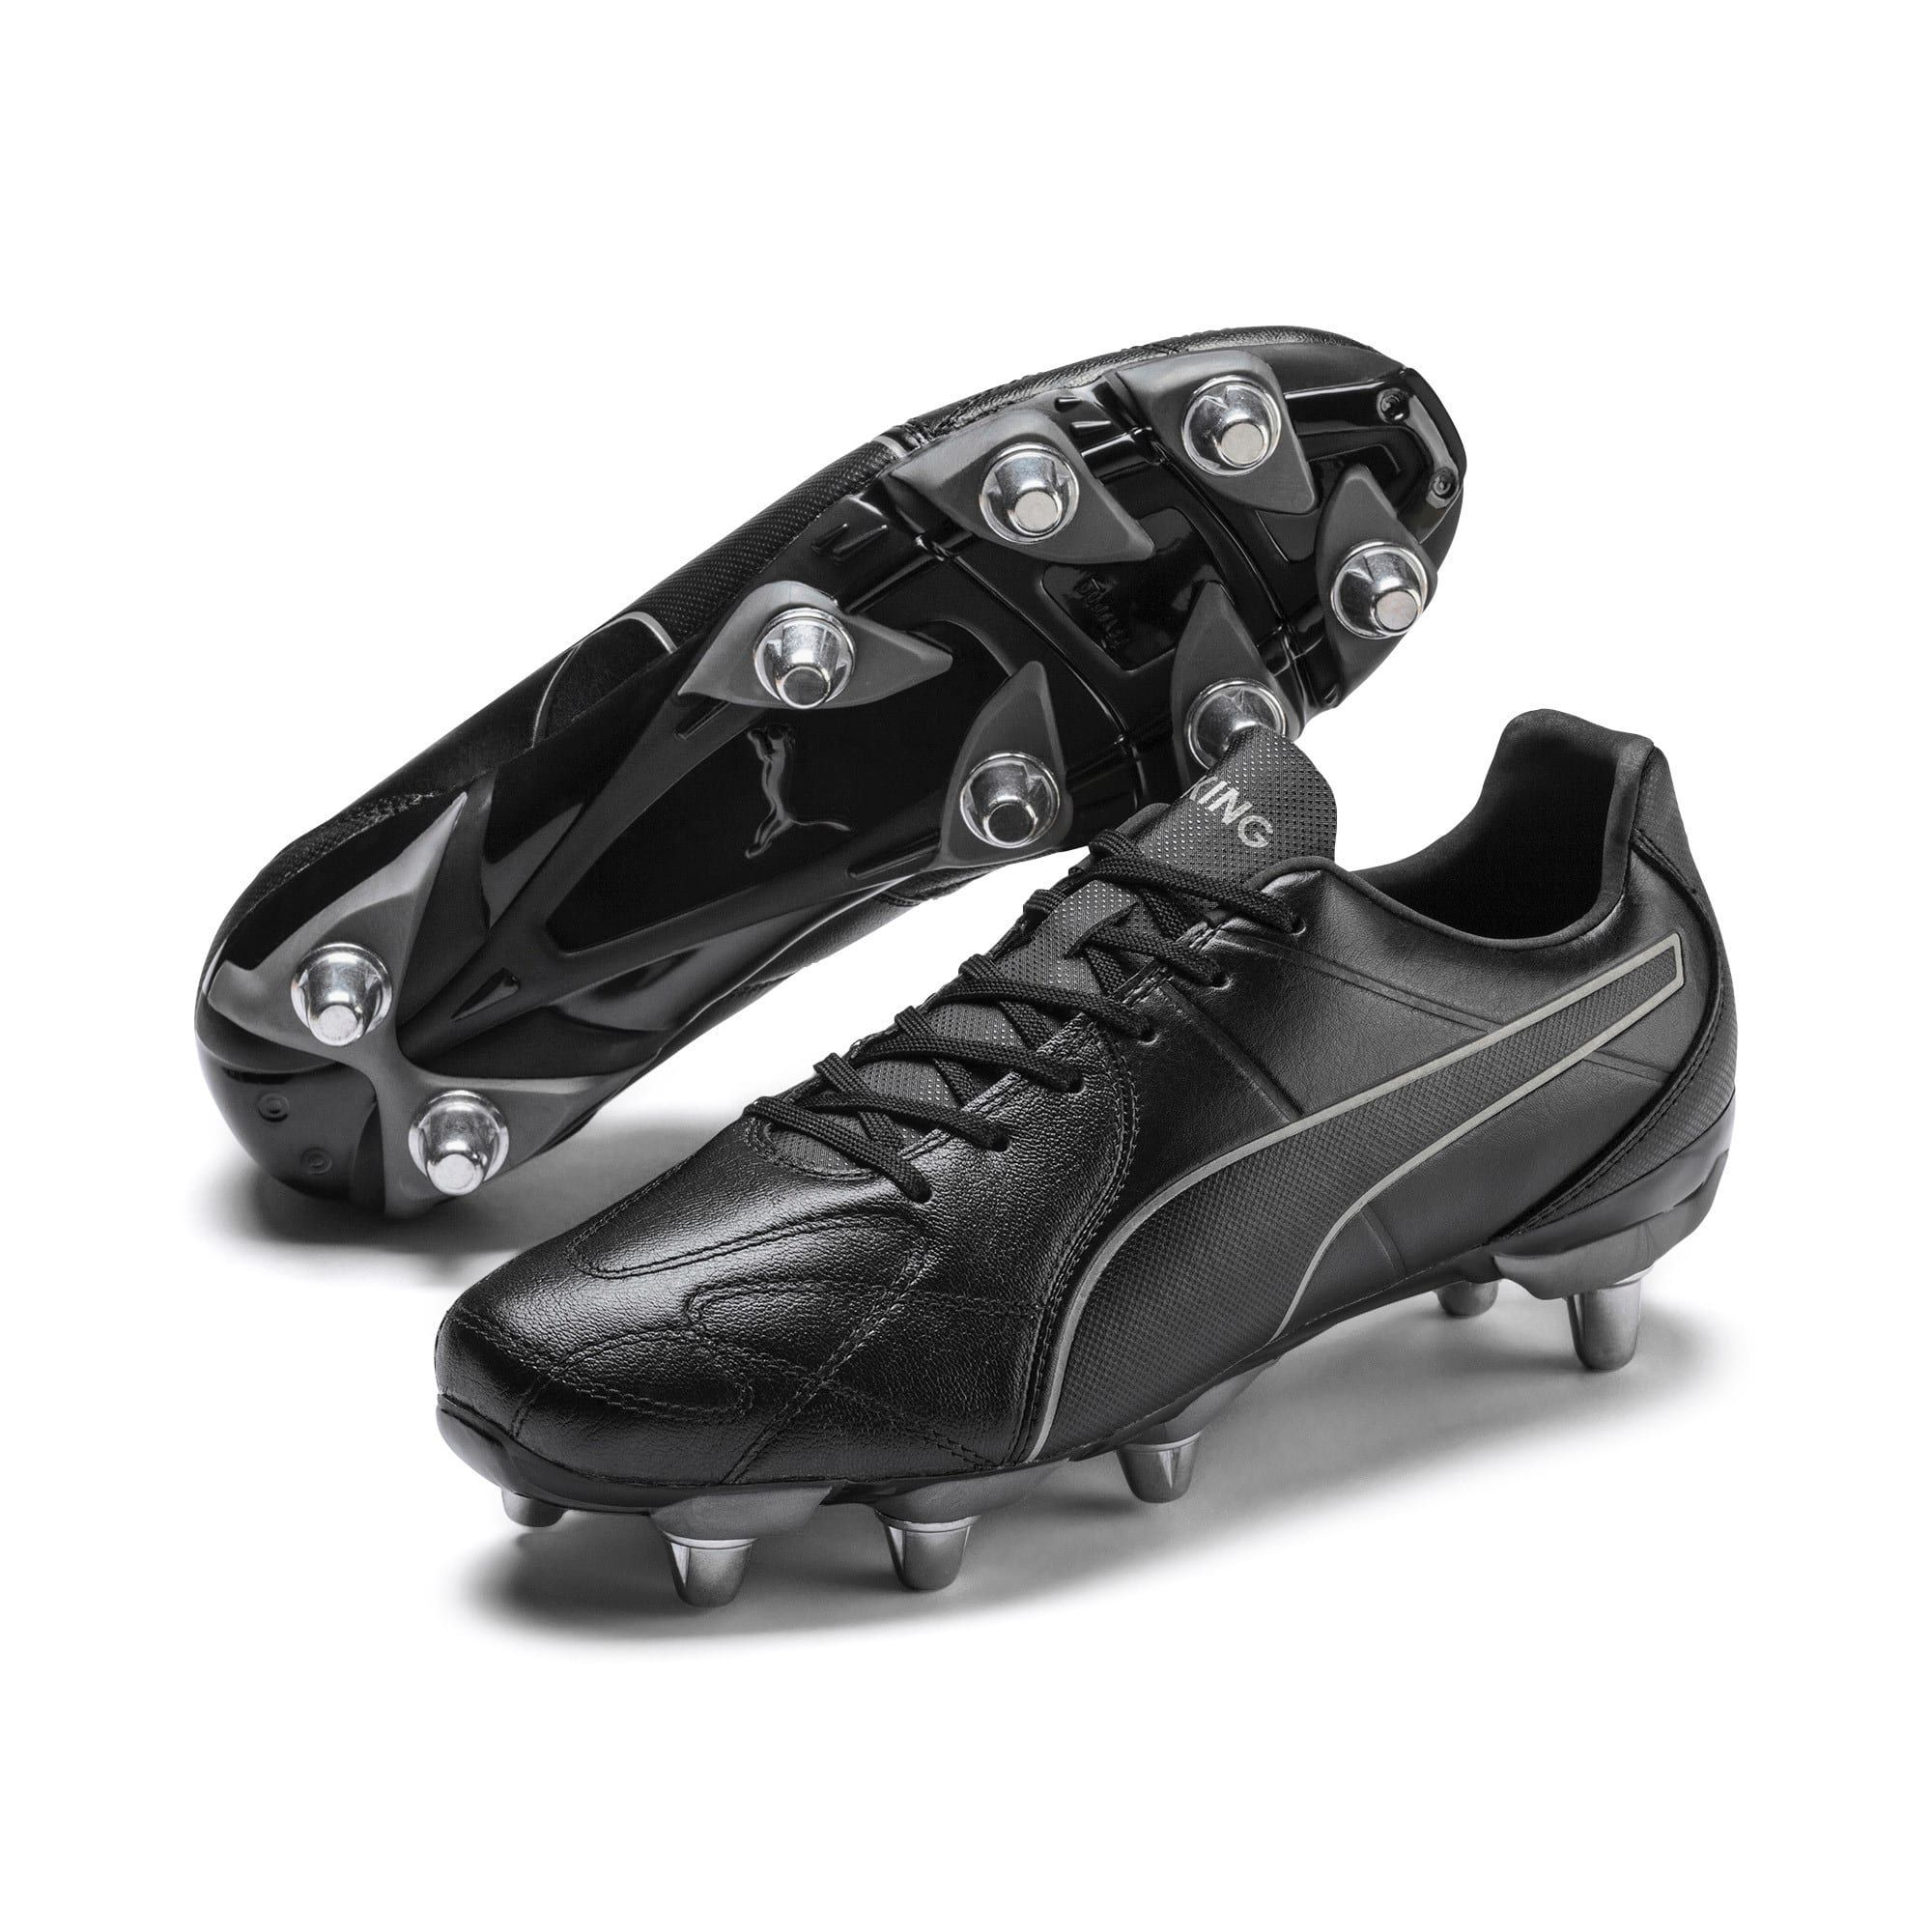 PUMA King Hero H8 Men's Rugby Boots in Black/Aged Silver size 11.5 #stylishmen